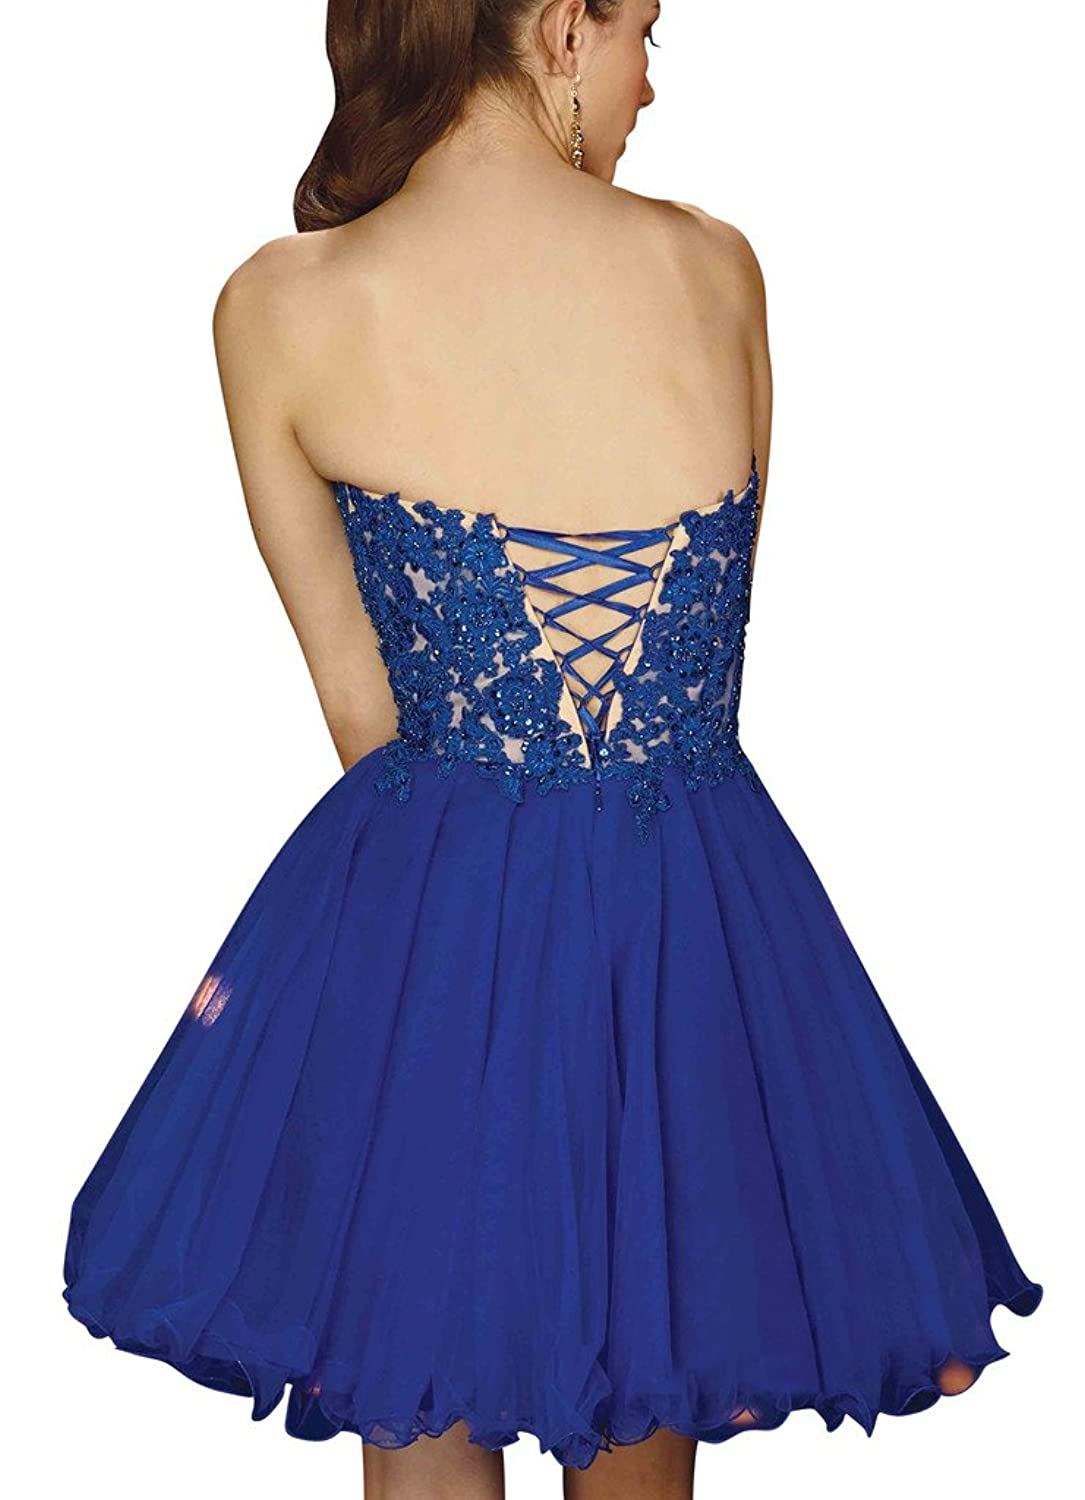 Girl's A-line Short Homecoming Dresses Applique Bodice Ruffle Evening Gowns